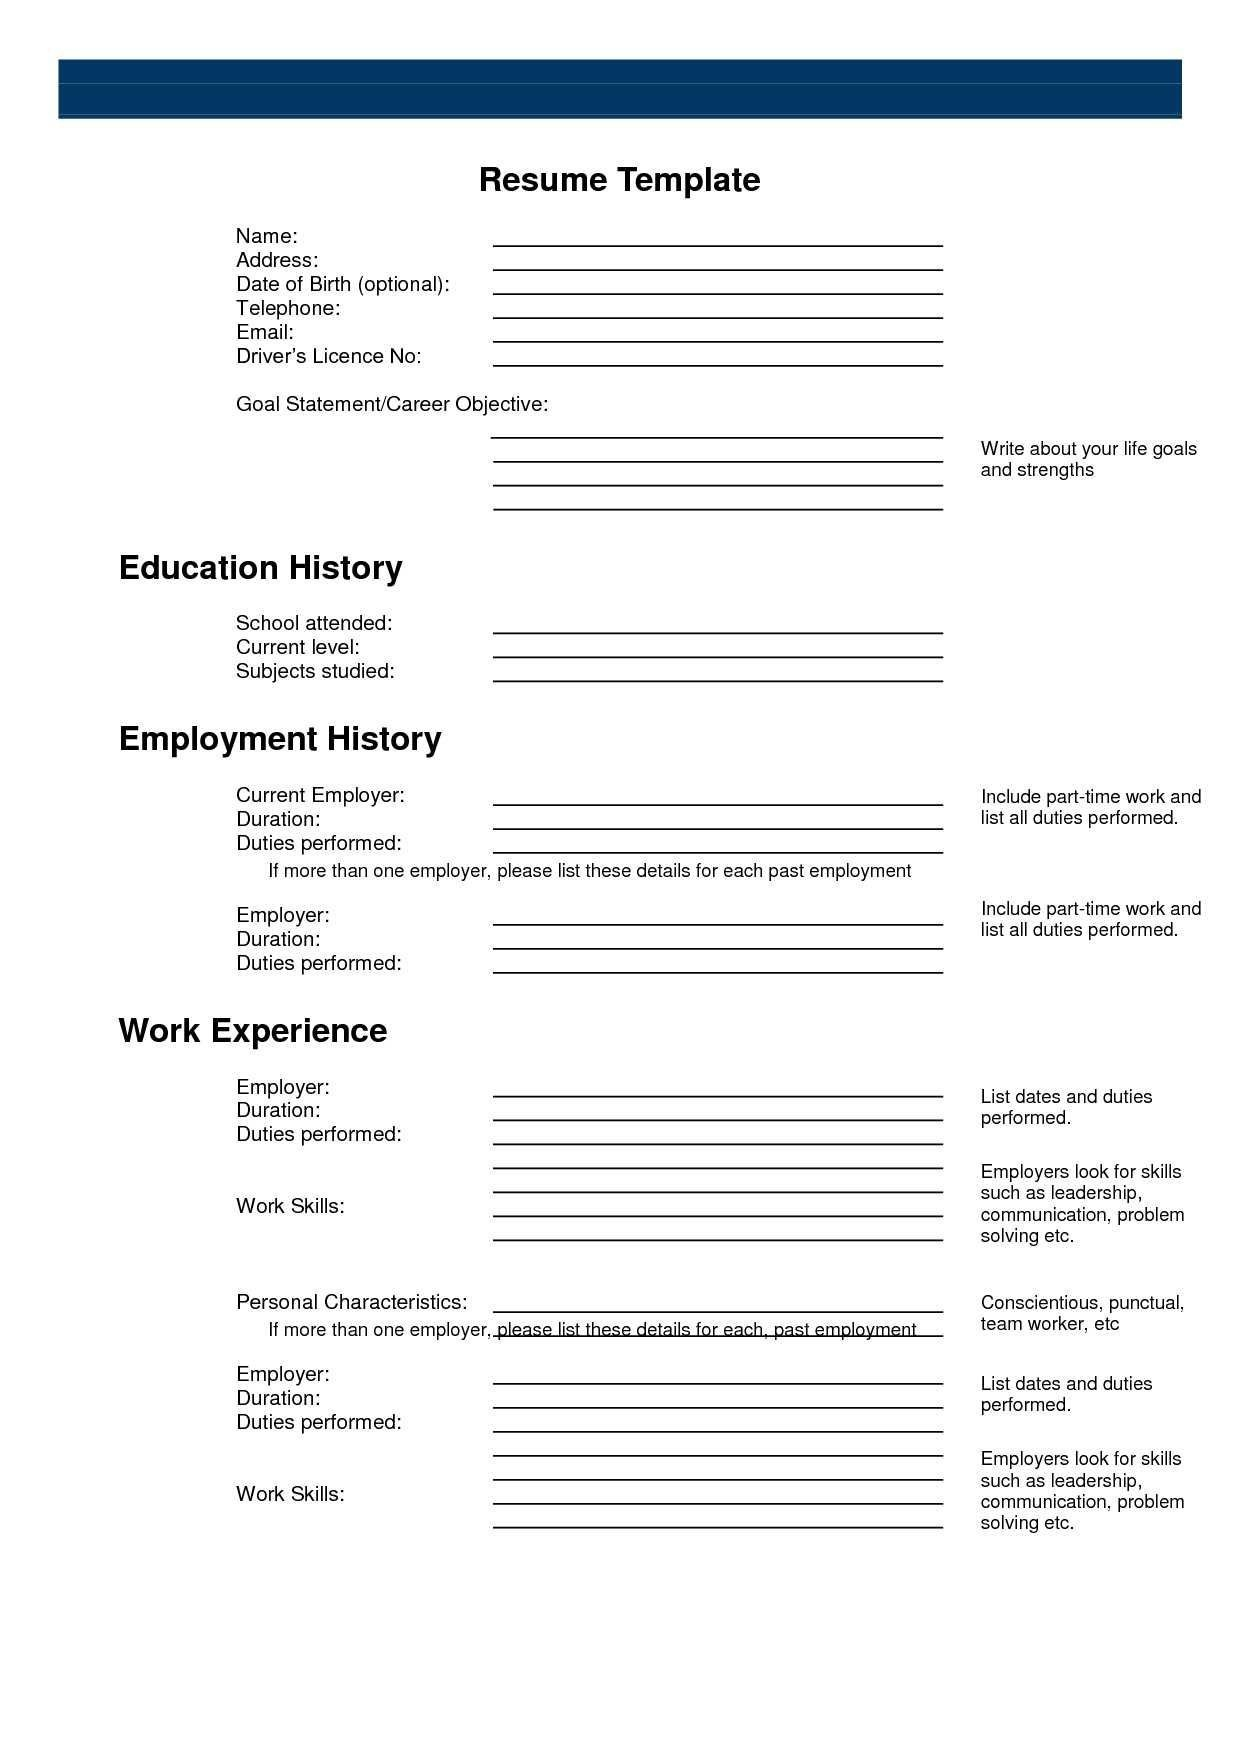 Pinanishfeds On Resumes | Free Printable Resume, Free Printable - Free Online Resume Templates Printable